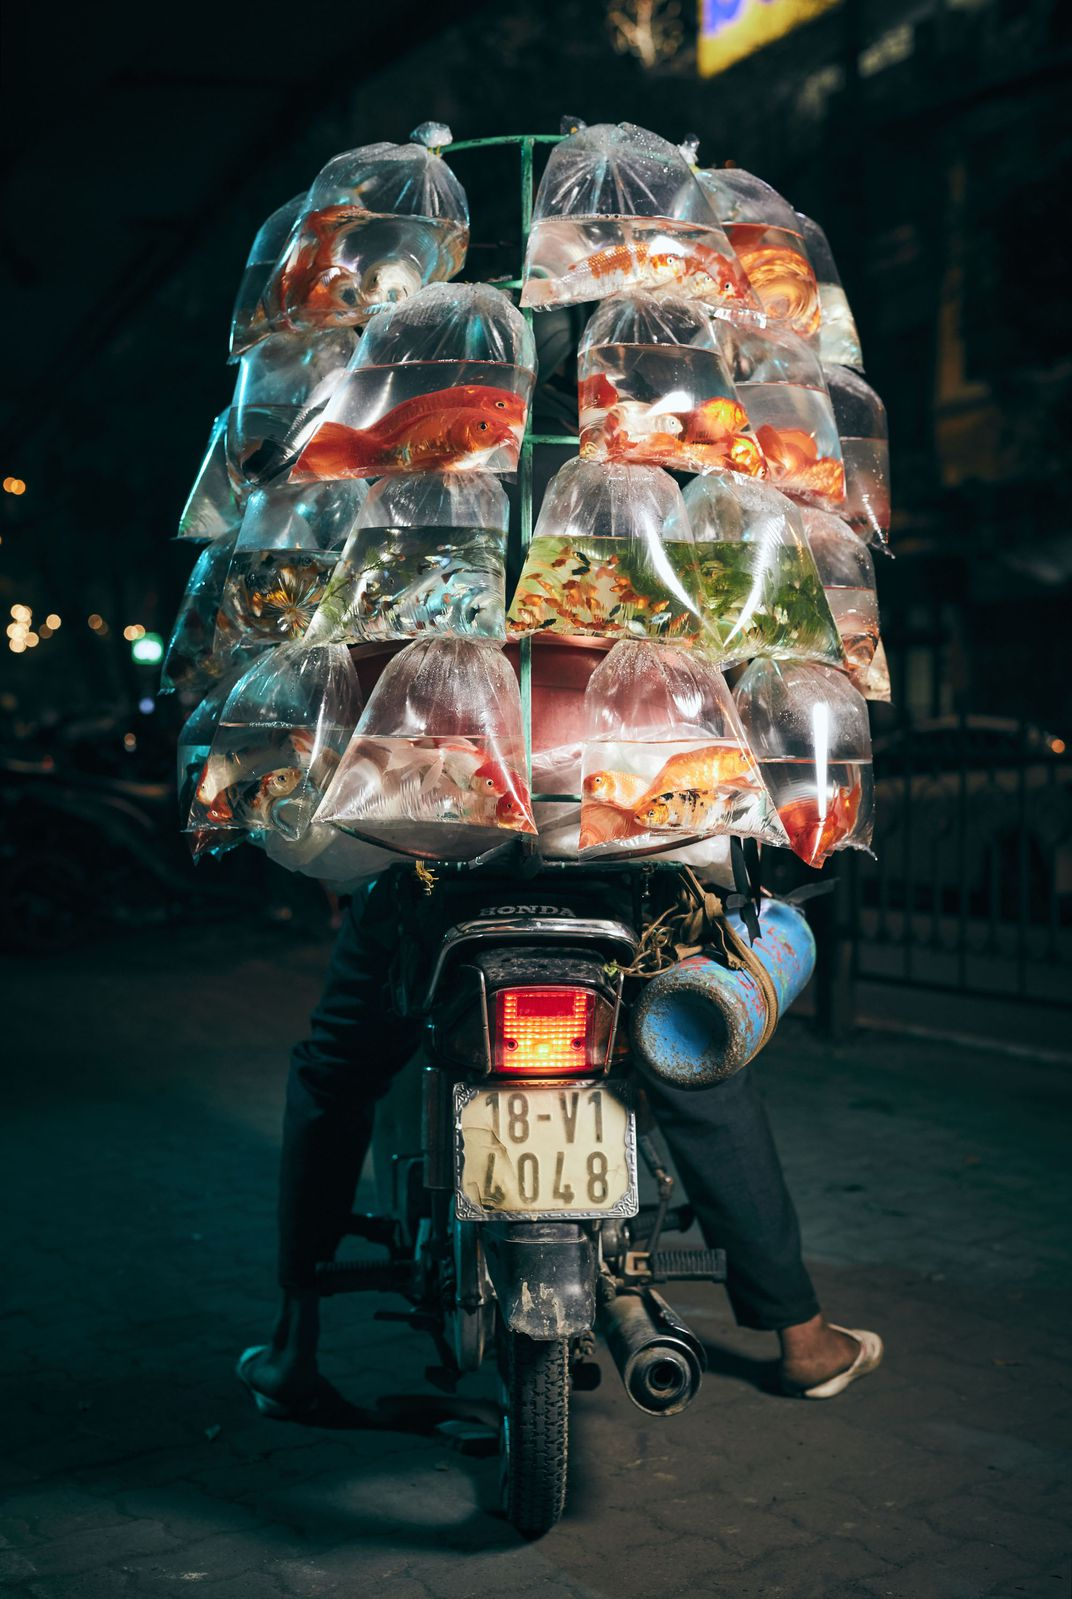 The photo 'A fish seller displays his goods' by British photographer Jon Enoch wins the grand prize of the 17th annual Smithsonian magazine photo contest.